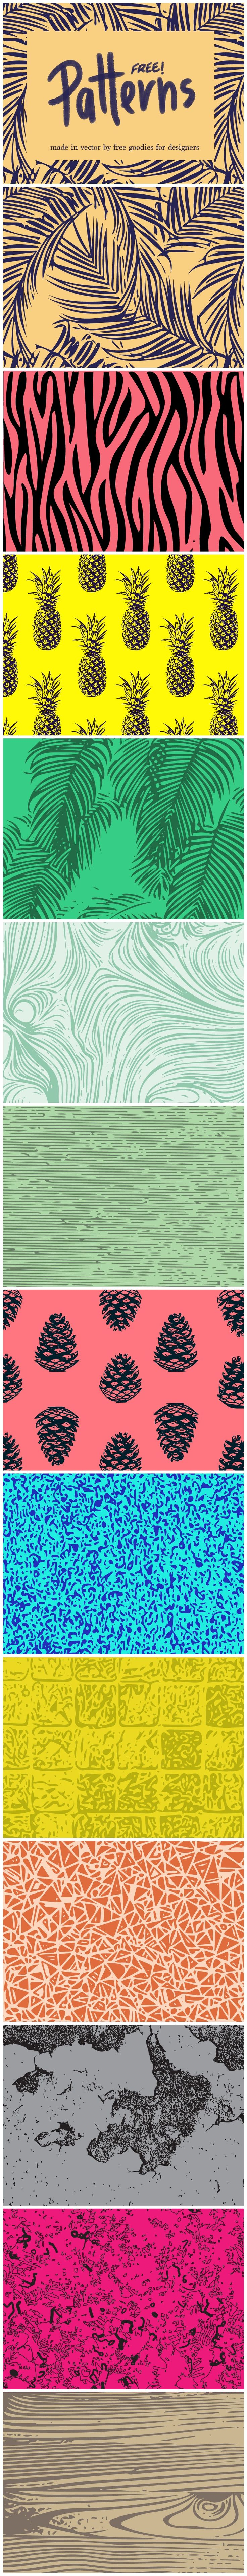 We're back with another freebie!  These #patterns that I'm sharing with you readers today are made of beautiful #illustrations and colors that just POP! The download includes them in a re-sizable .AI vector format as well as a print-ready high quality .PDF document. #Free for personal and #commercial use. Download now!